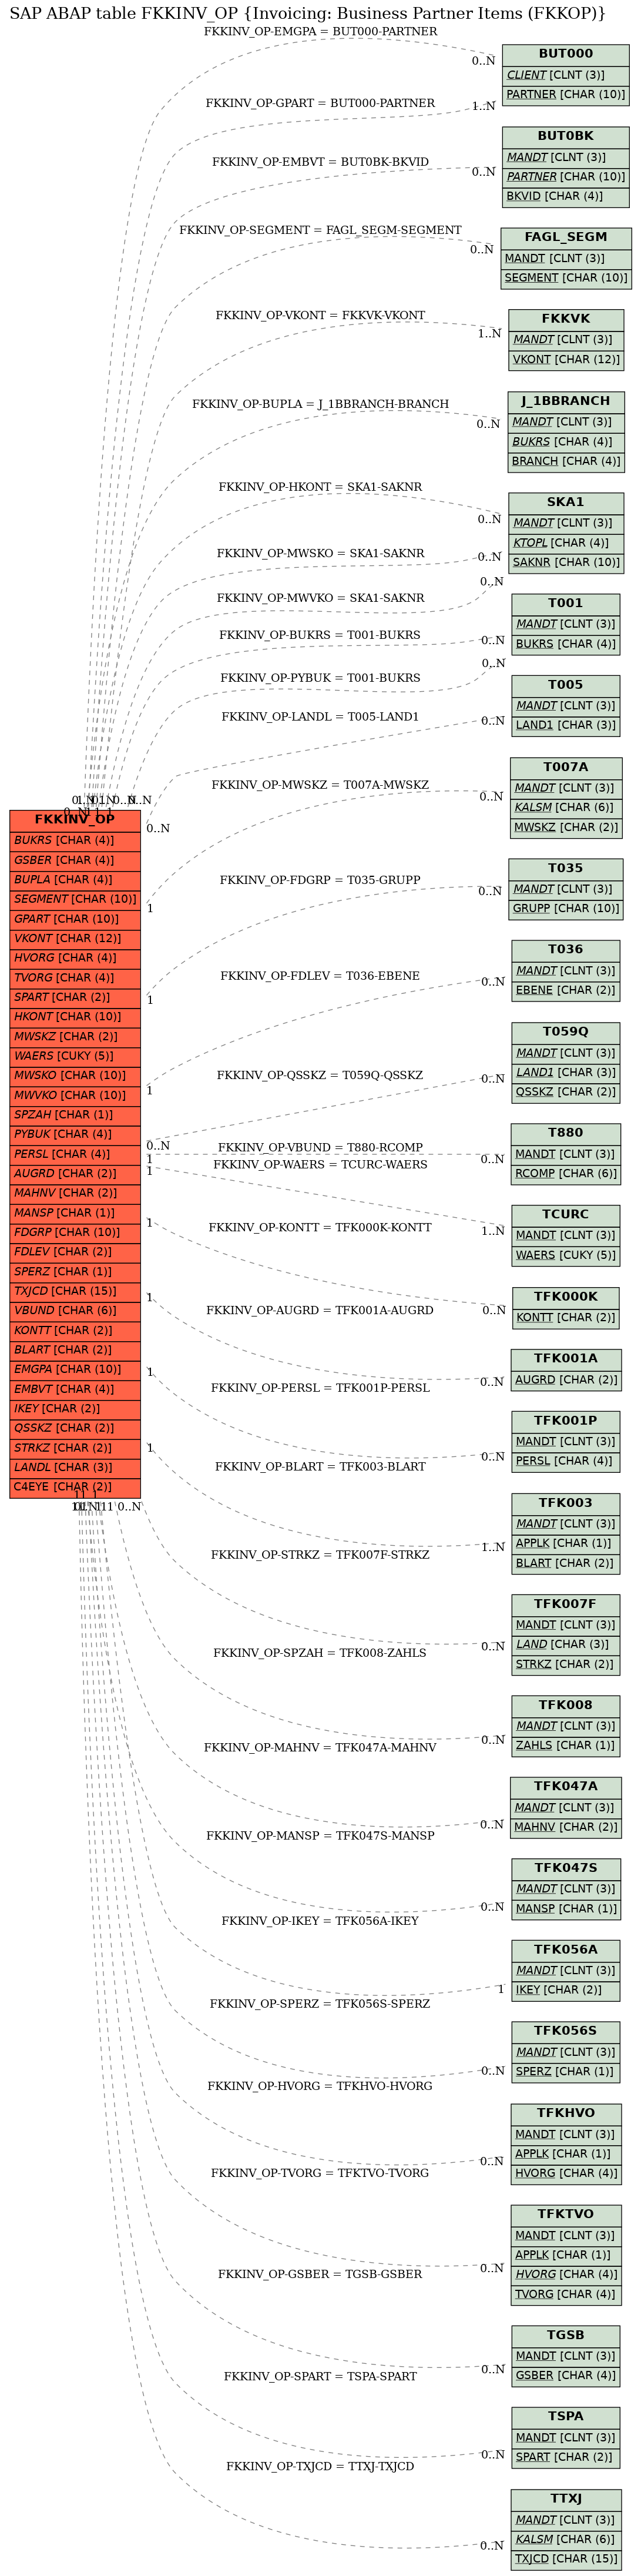 E-R Diagram for table FKKINV_OP (Invoicing: Business Partner Items (FKKOP))